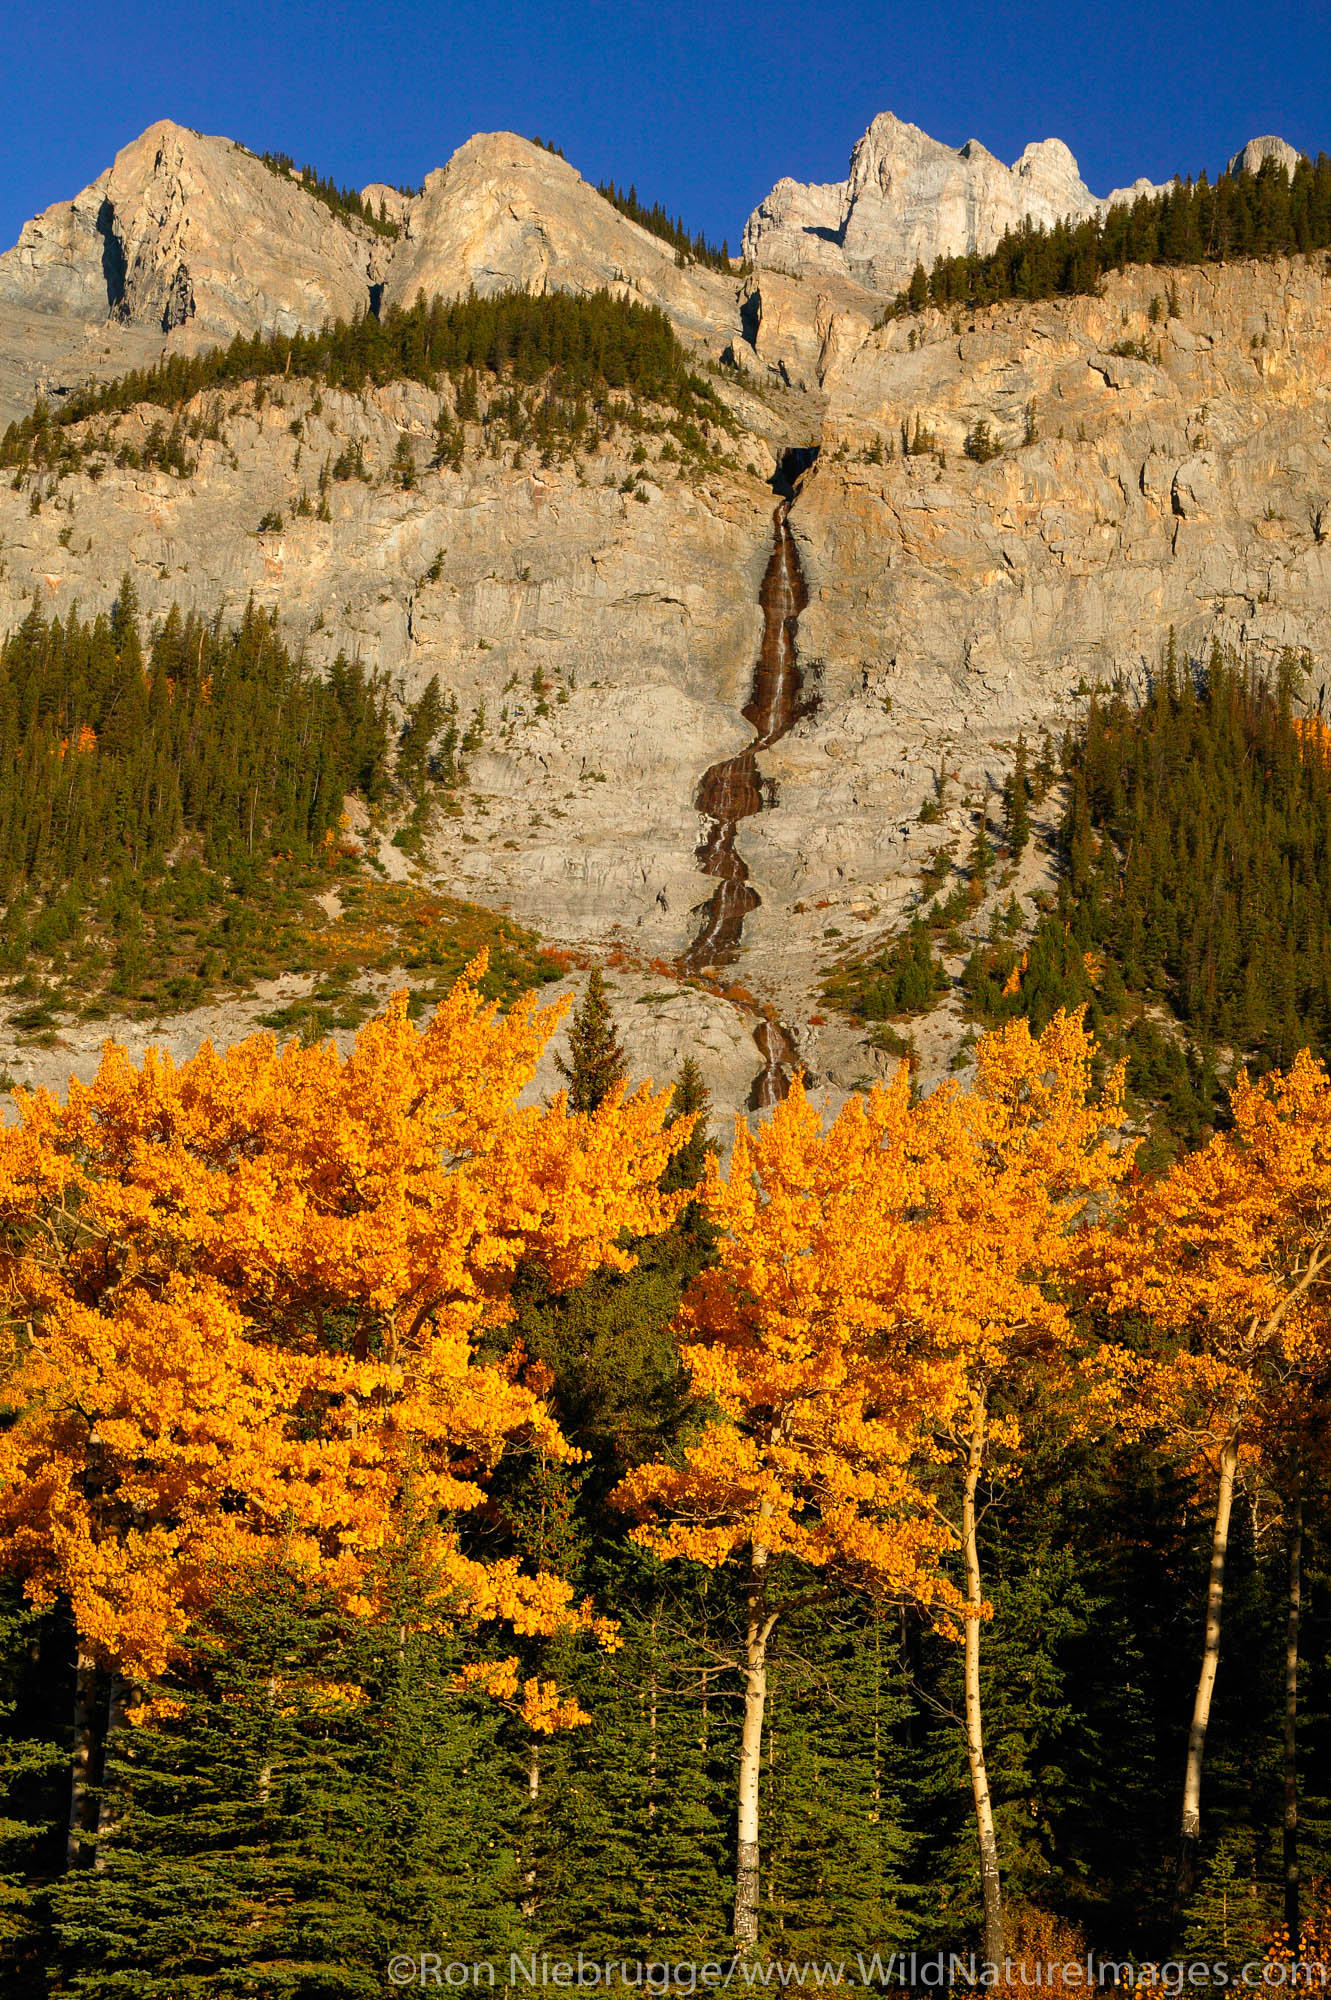 A waterfall flows down the face of Cascade Mountain (2,997 m) in the fall, Banff National Park, Alberta, Canada.